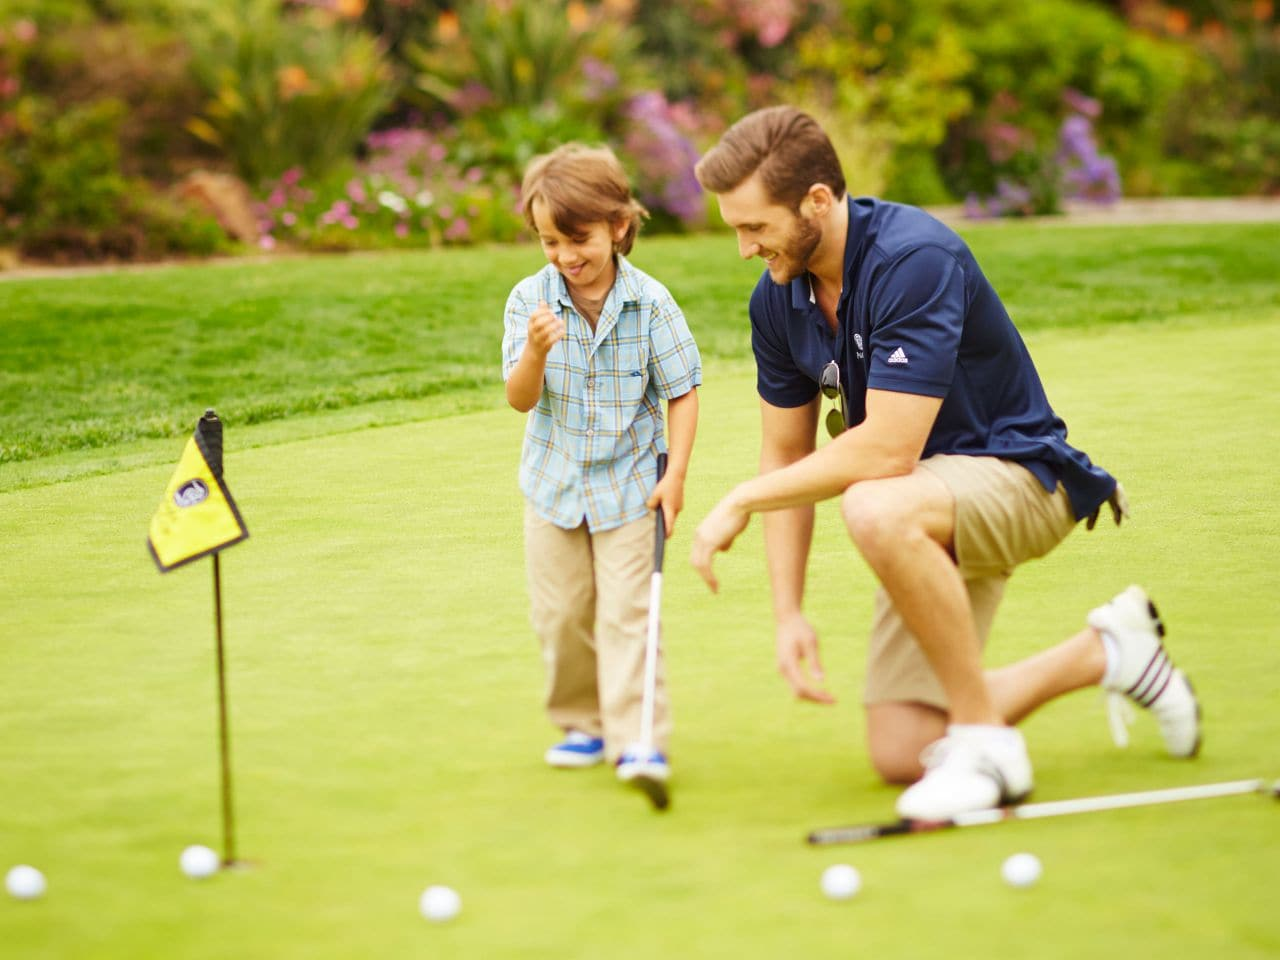 Dad and son playing golf